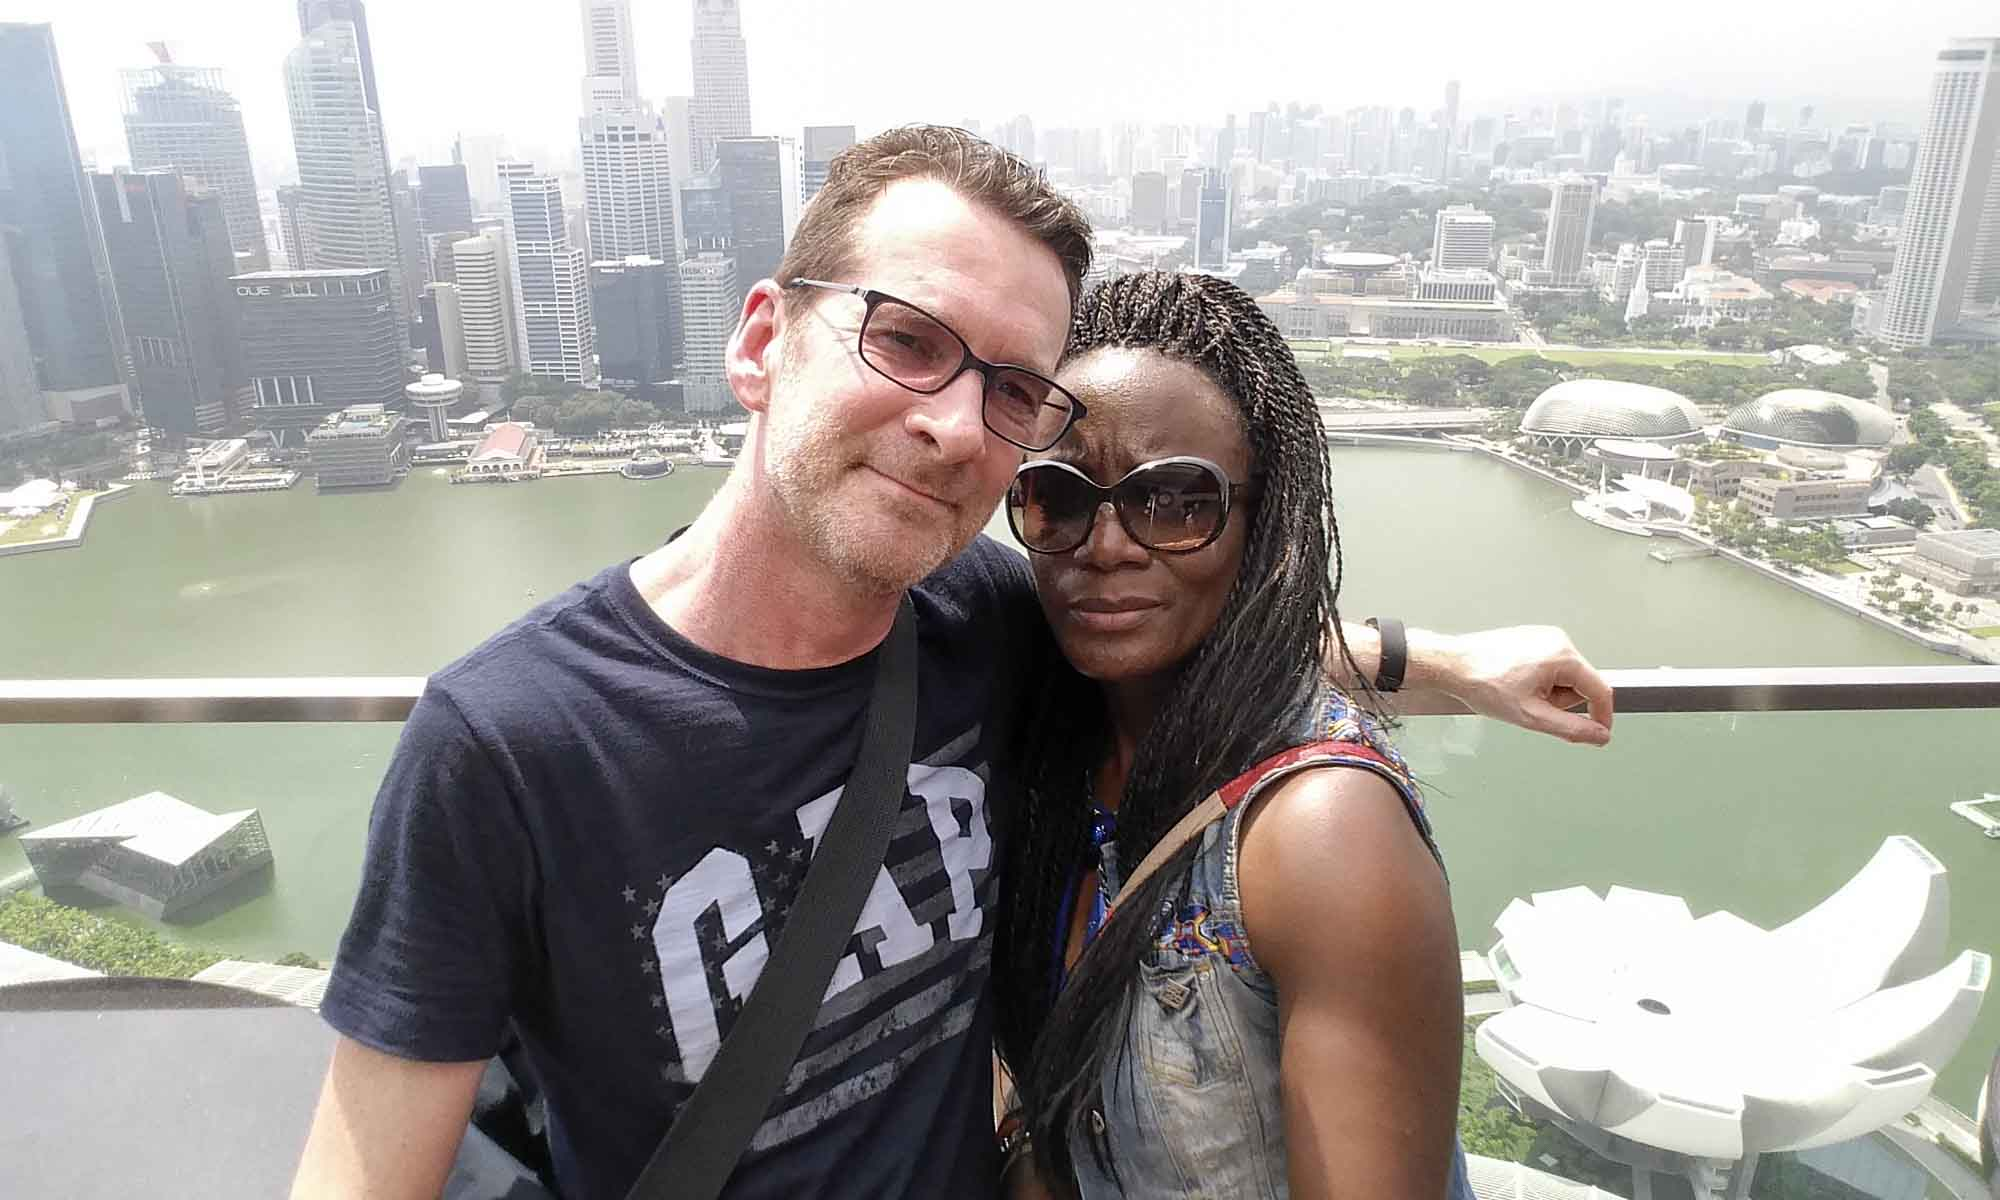 Us at the roof of the Marina Bay Sands Hotel, Singapore